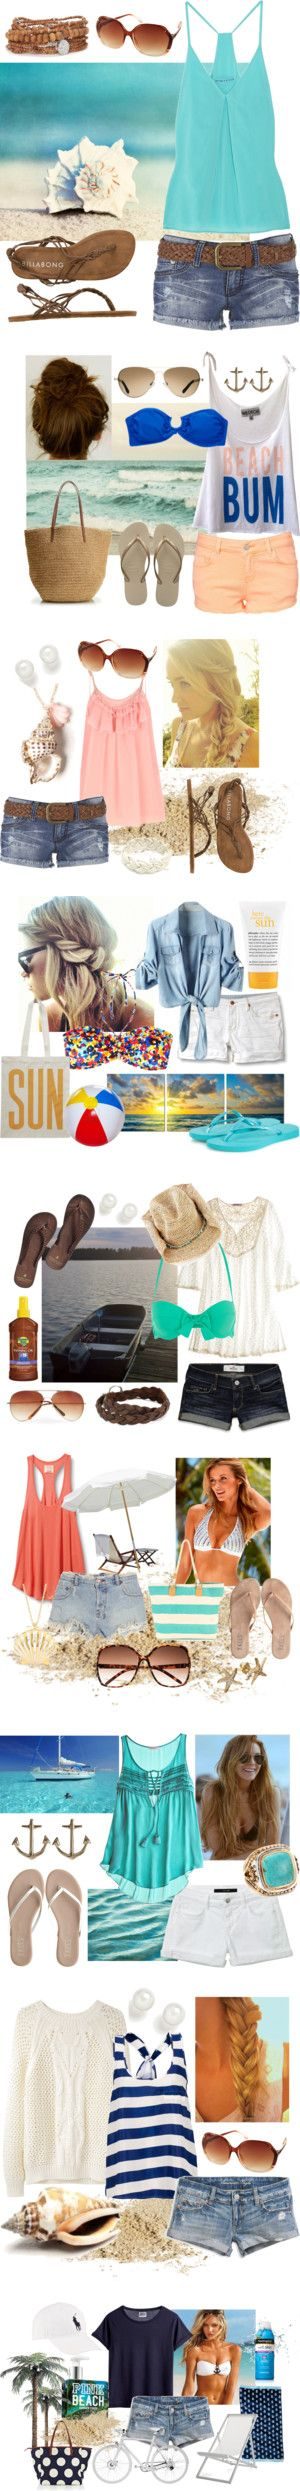 I think my styles beach bum lol I would live in shorts and tank tops all year if it was ok